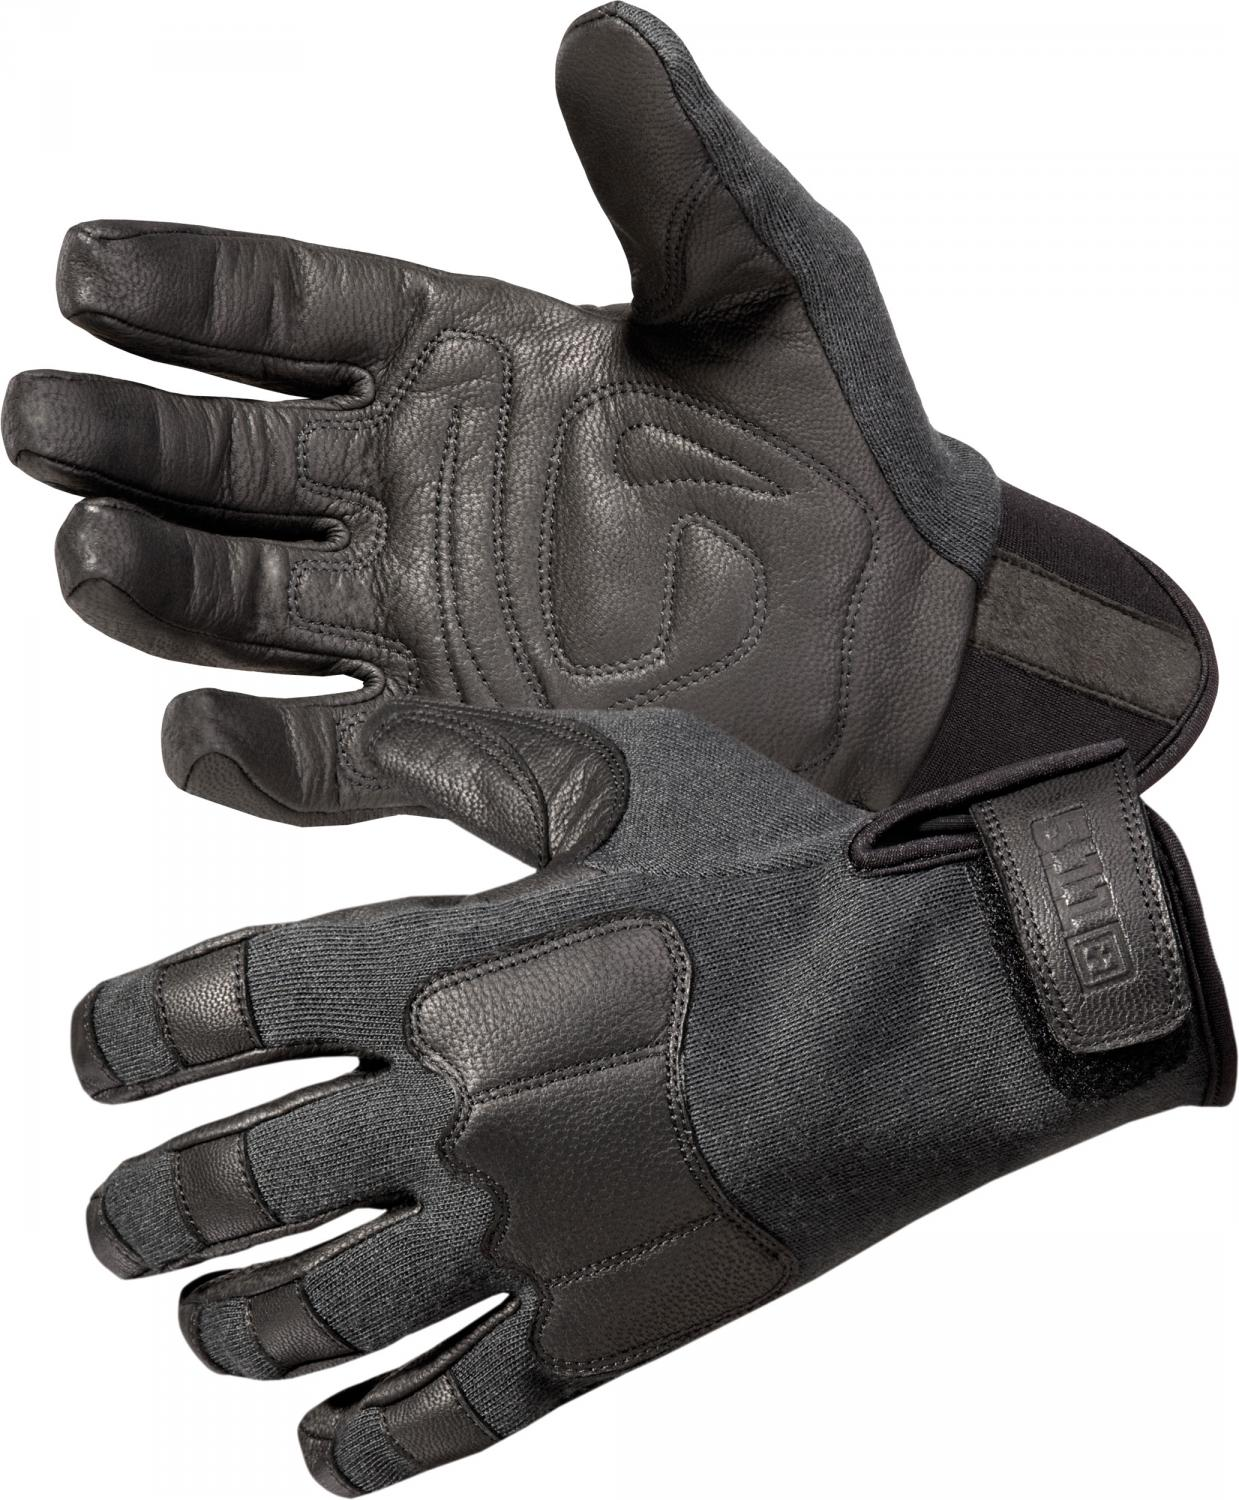 5.11 Tactical TAC AK2 Gloves, Black, X Large (59341)